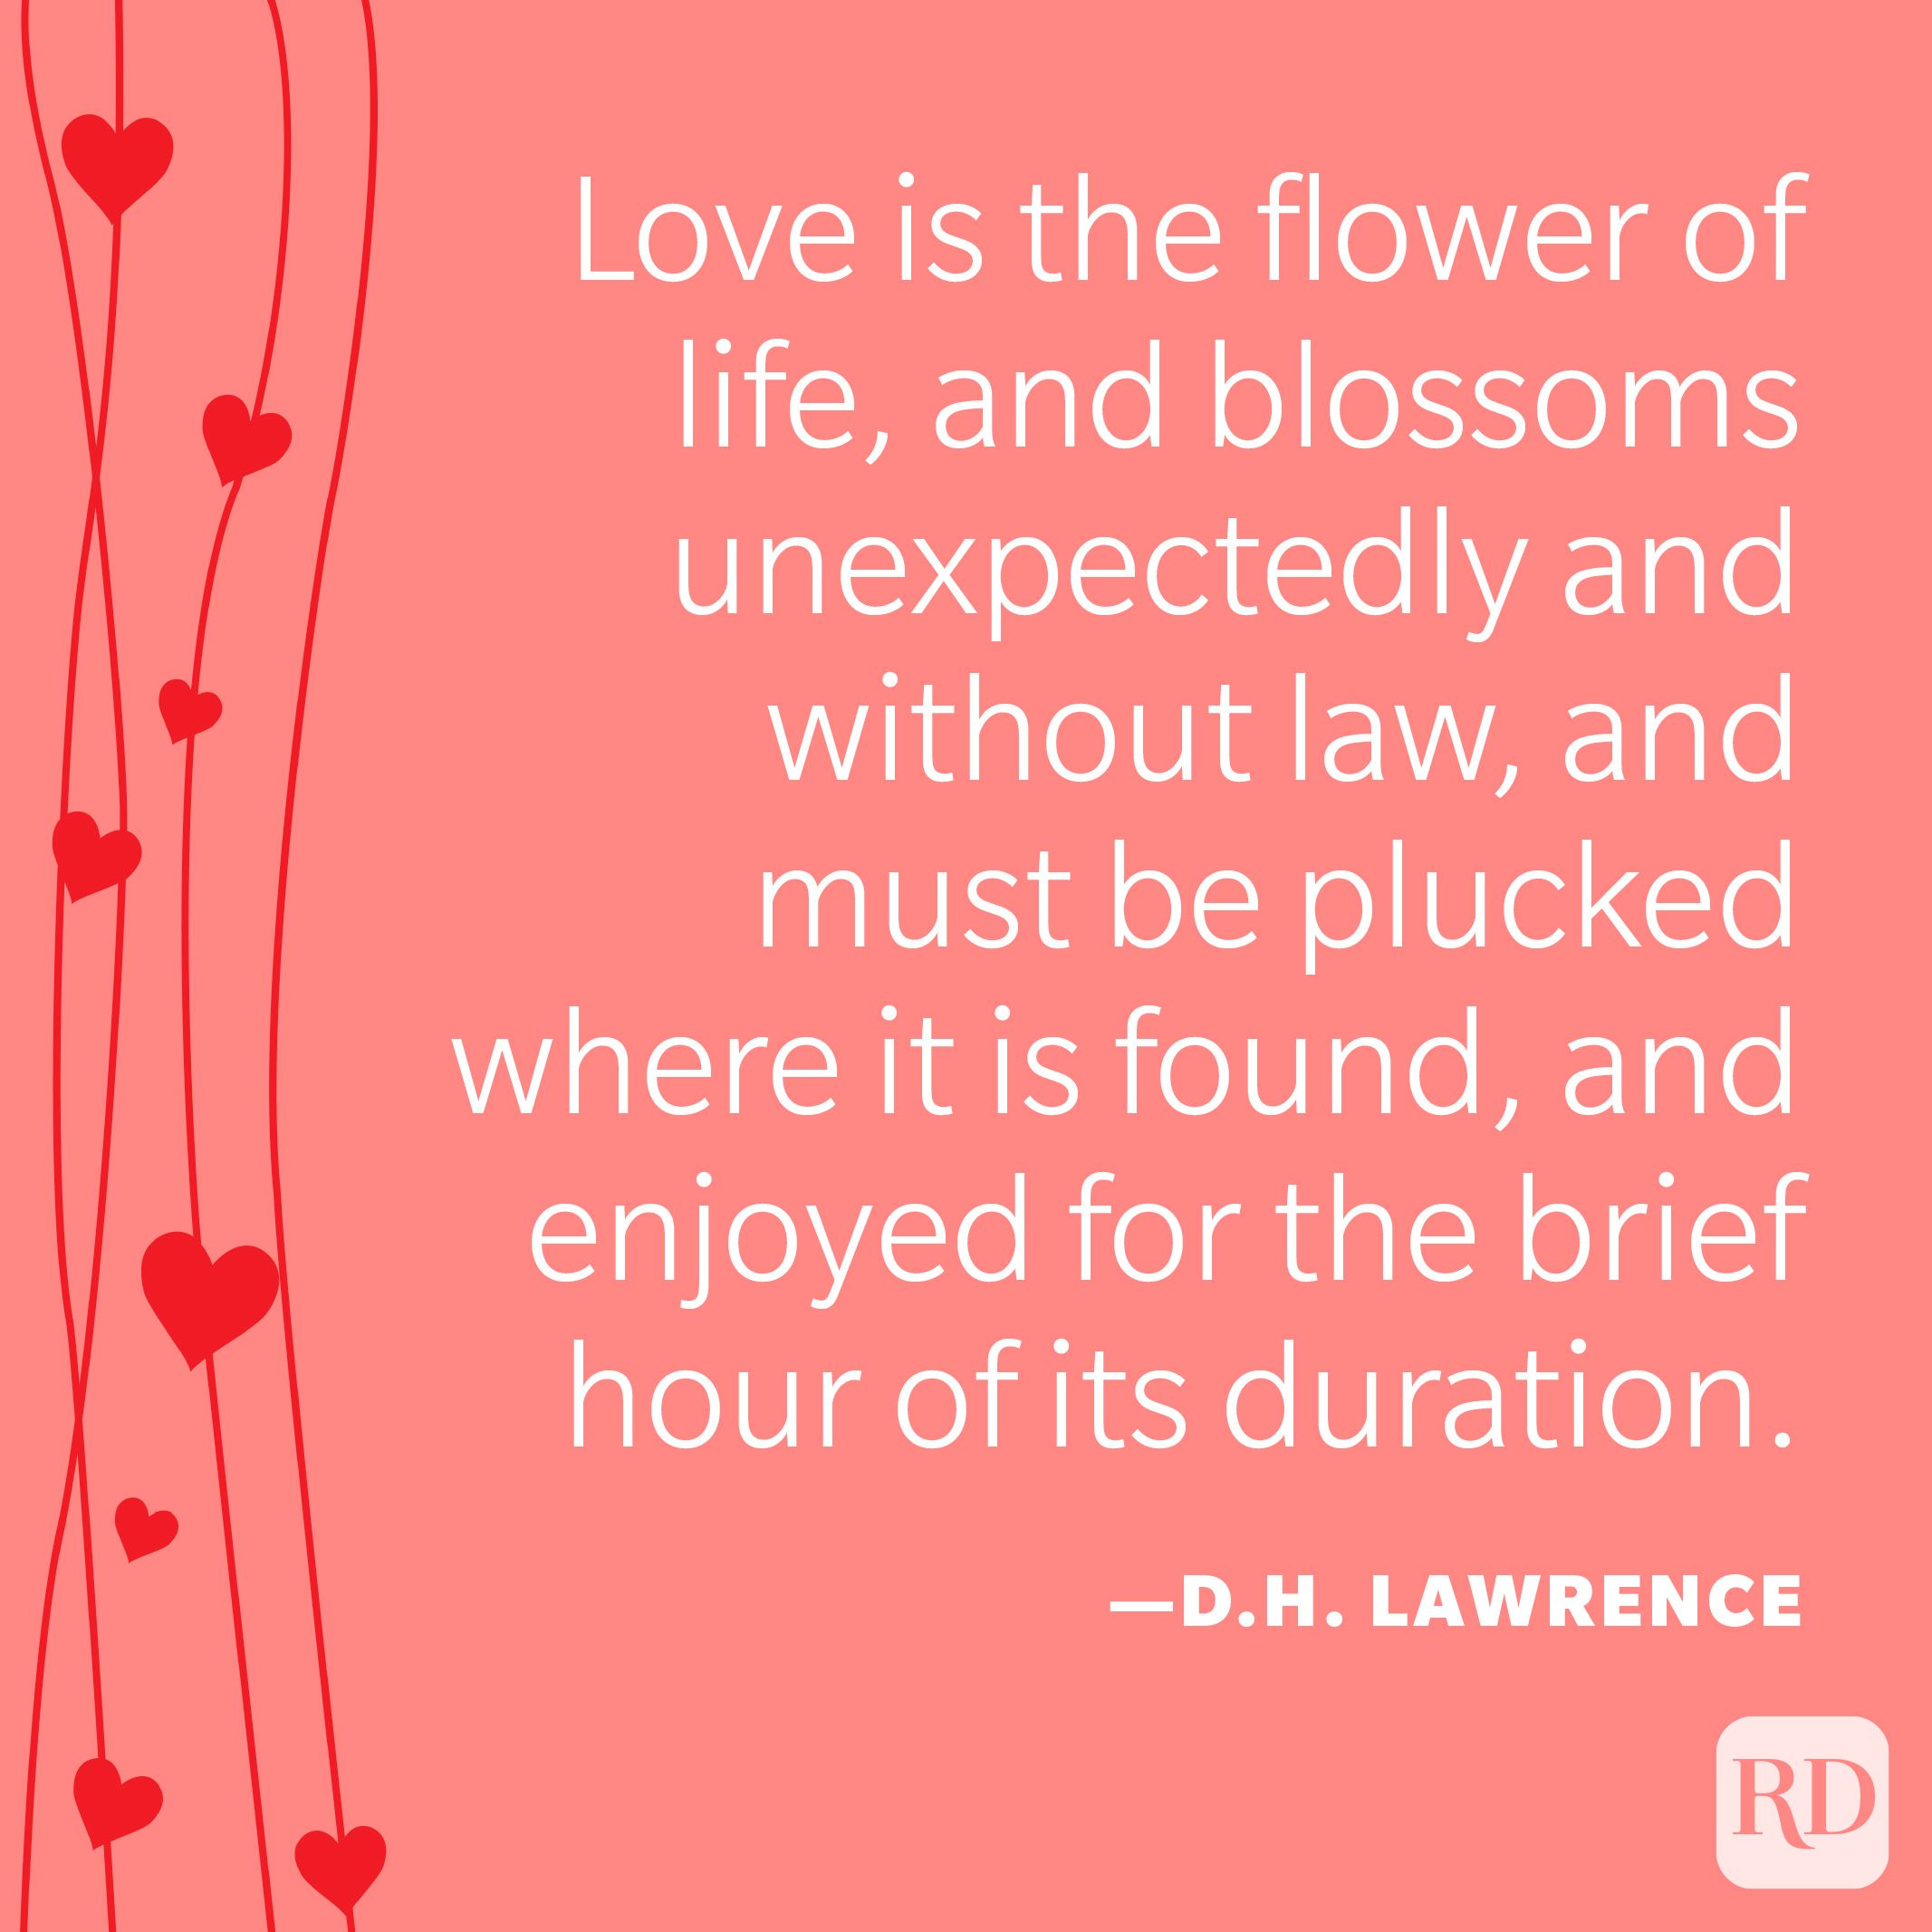 """""""Love is the flower of life, and blossoms unexpectedly and without law, and must be plucked where it is found, and enjoyed for the brief hour of its duration."""" —D.H. Lawrence"""